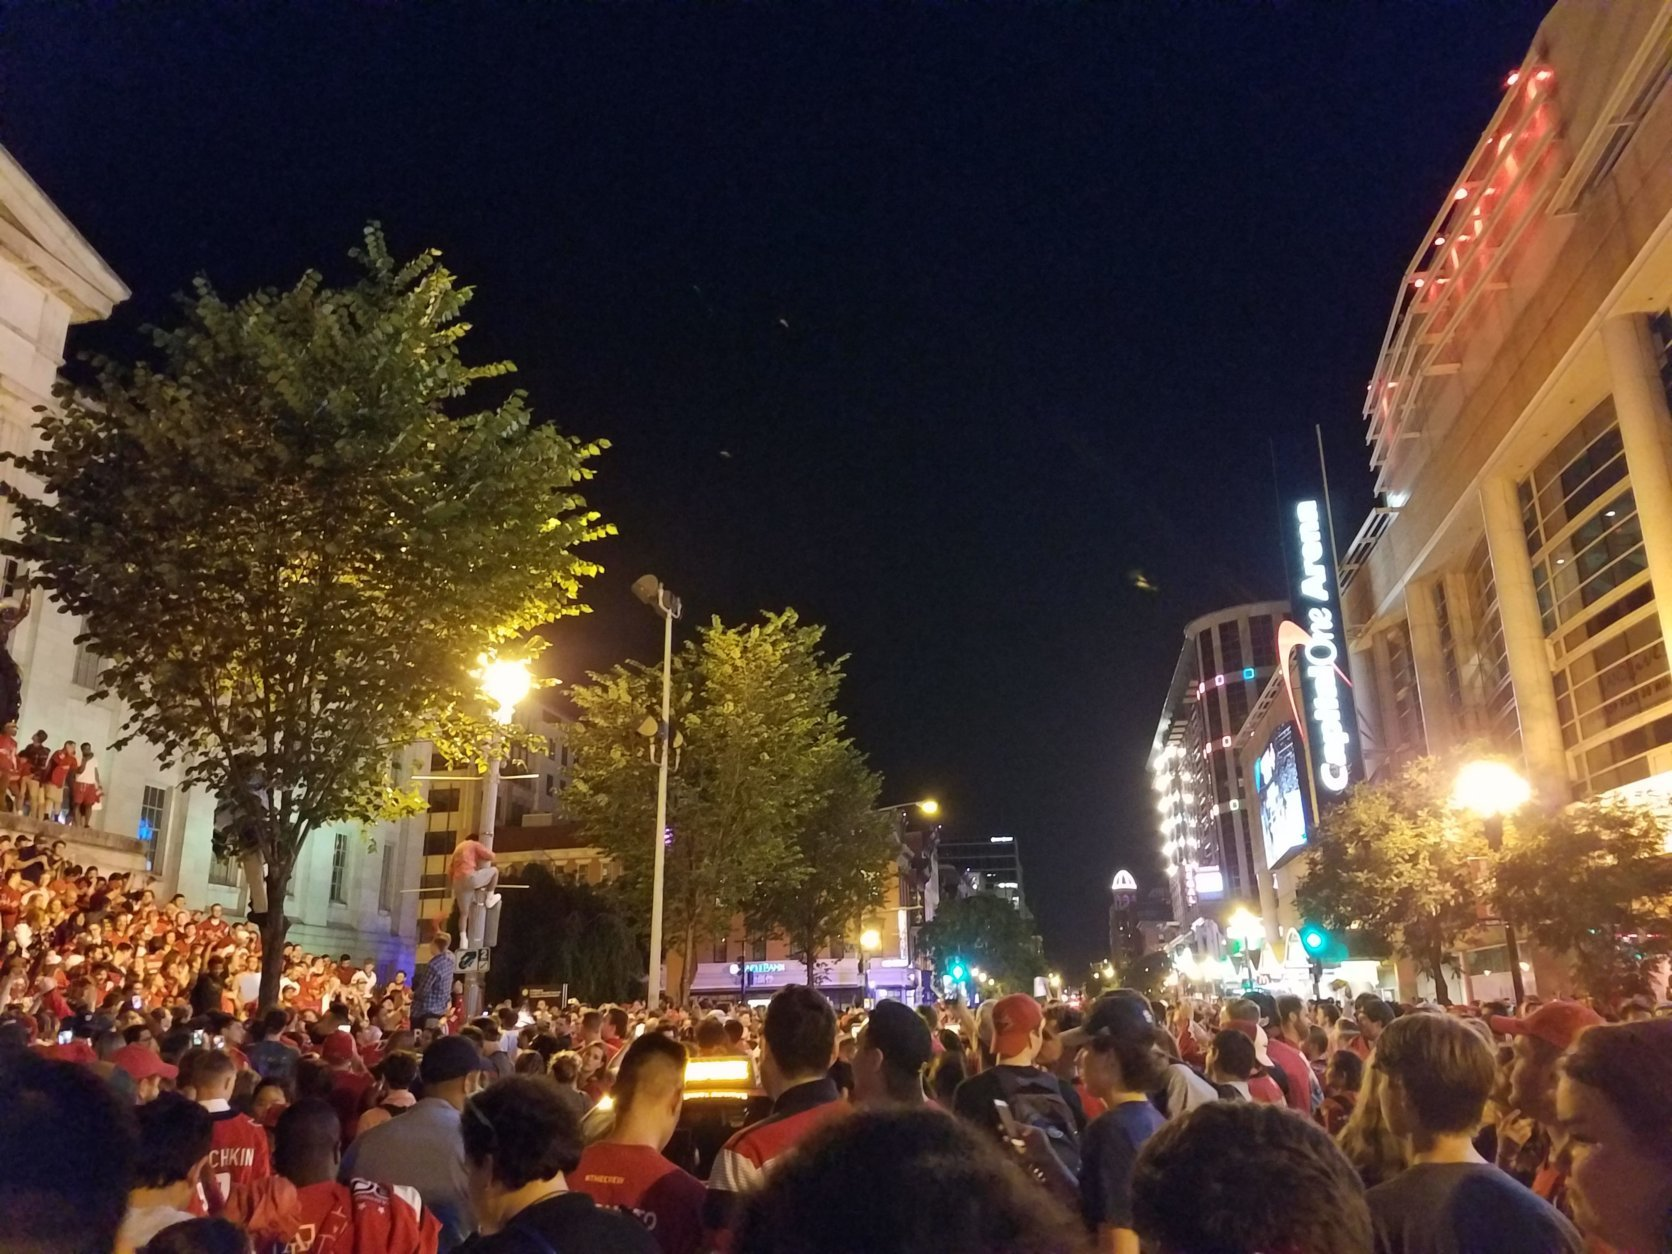 Fans gather in Washington, D.C. after the Washington Capitals beat the Tampa Bay Lightning 4-0 in Game 7 on Wednesday, May 23, 2018. (WTOP/Lisa Weiner)